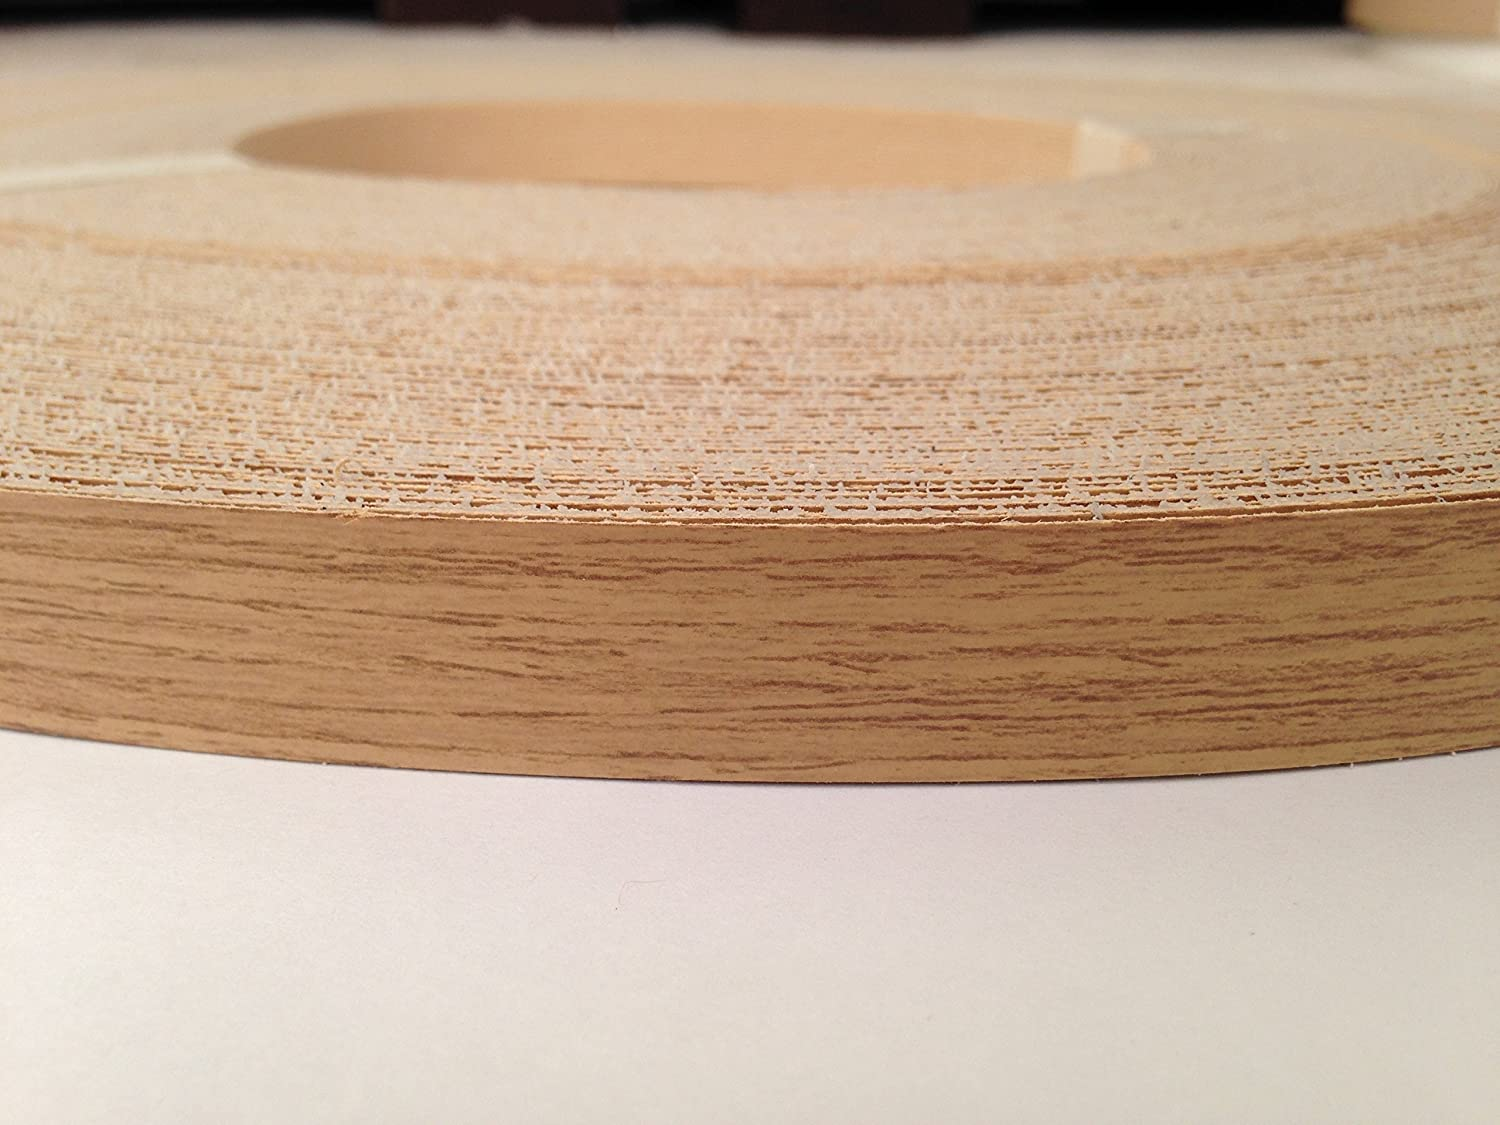 Pre Glued Iron on Classic Oak Melamine Edging Tape 19mm wide x 5 metres ...Free Postage Melamine edging 19mm wide